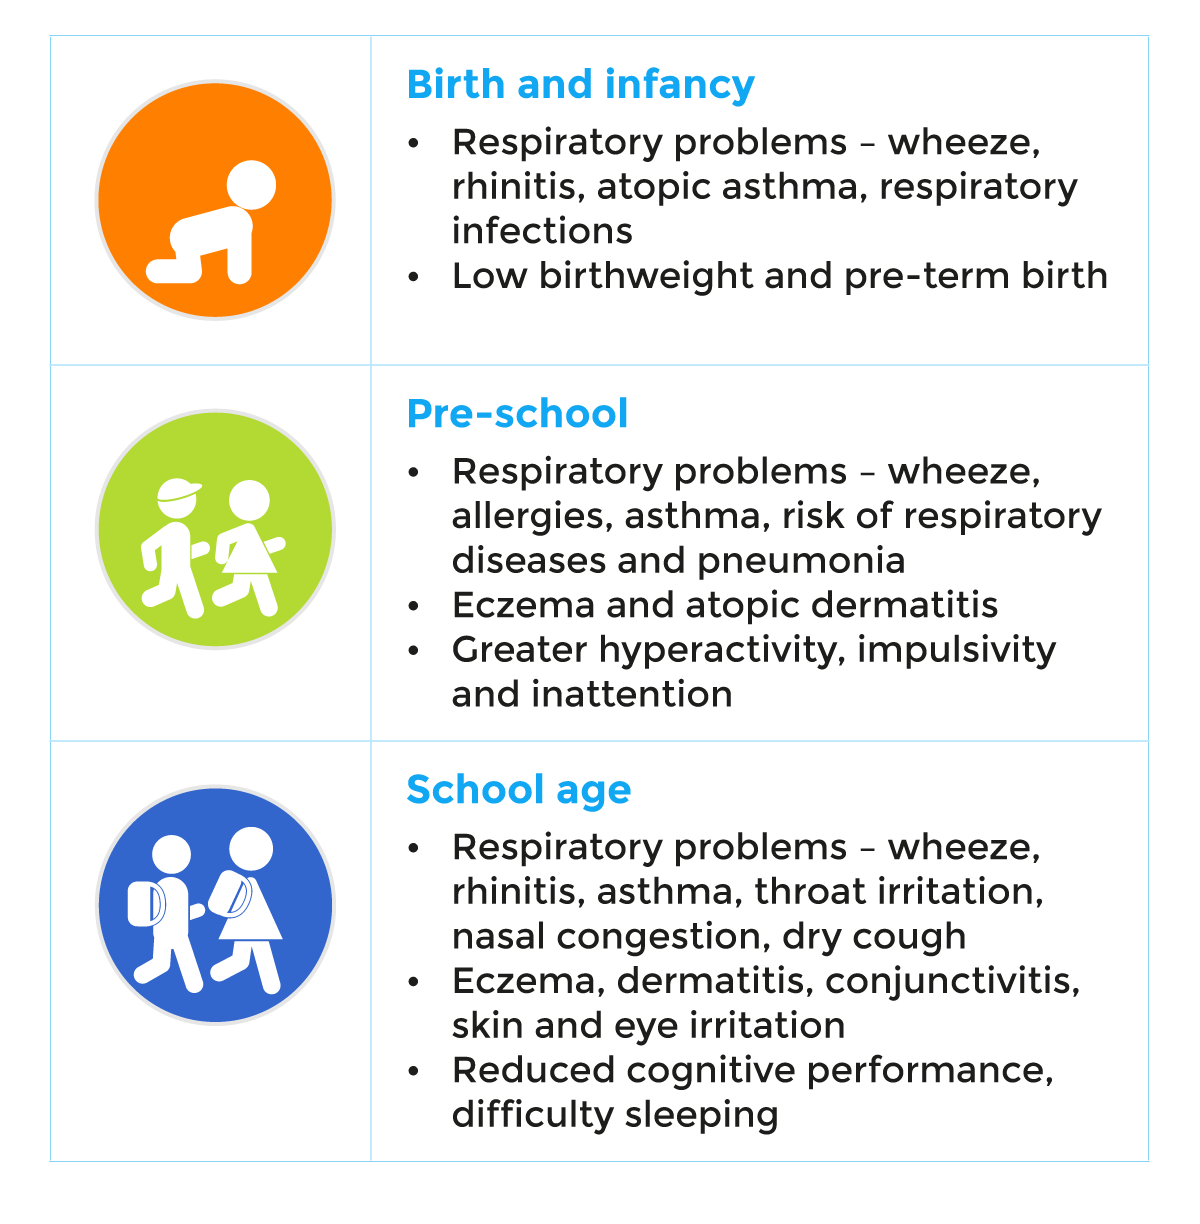 Birth and infancy: Respiratory problems, Low birthweight and pre-term birth | Pre-school: Respiratory problems, Eczema and atopic dermatitis, Greater hyperactivity, impulsivity and inattention | School age: Respiratory problems, Eczema, skin and eye irritation, Reduced cognitive performance, difficulty sleeping